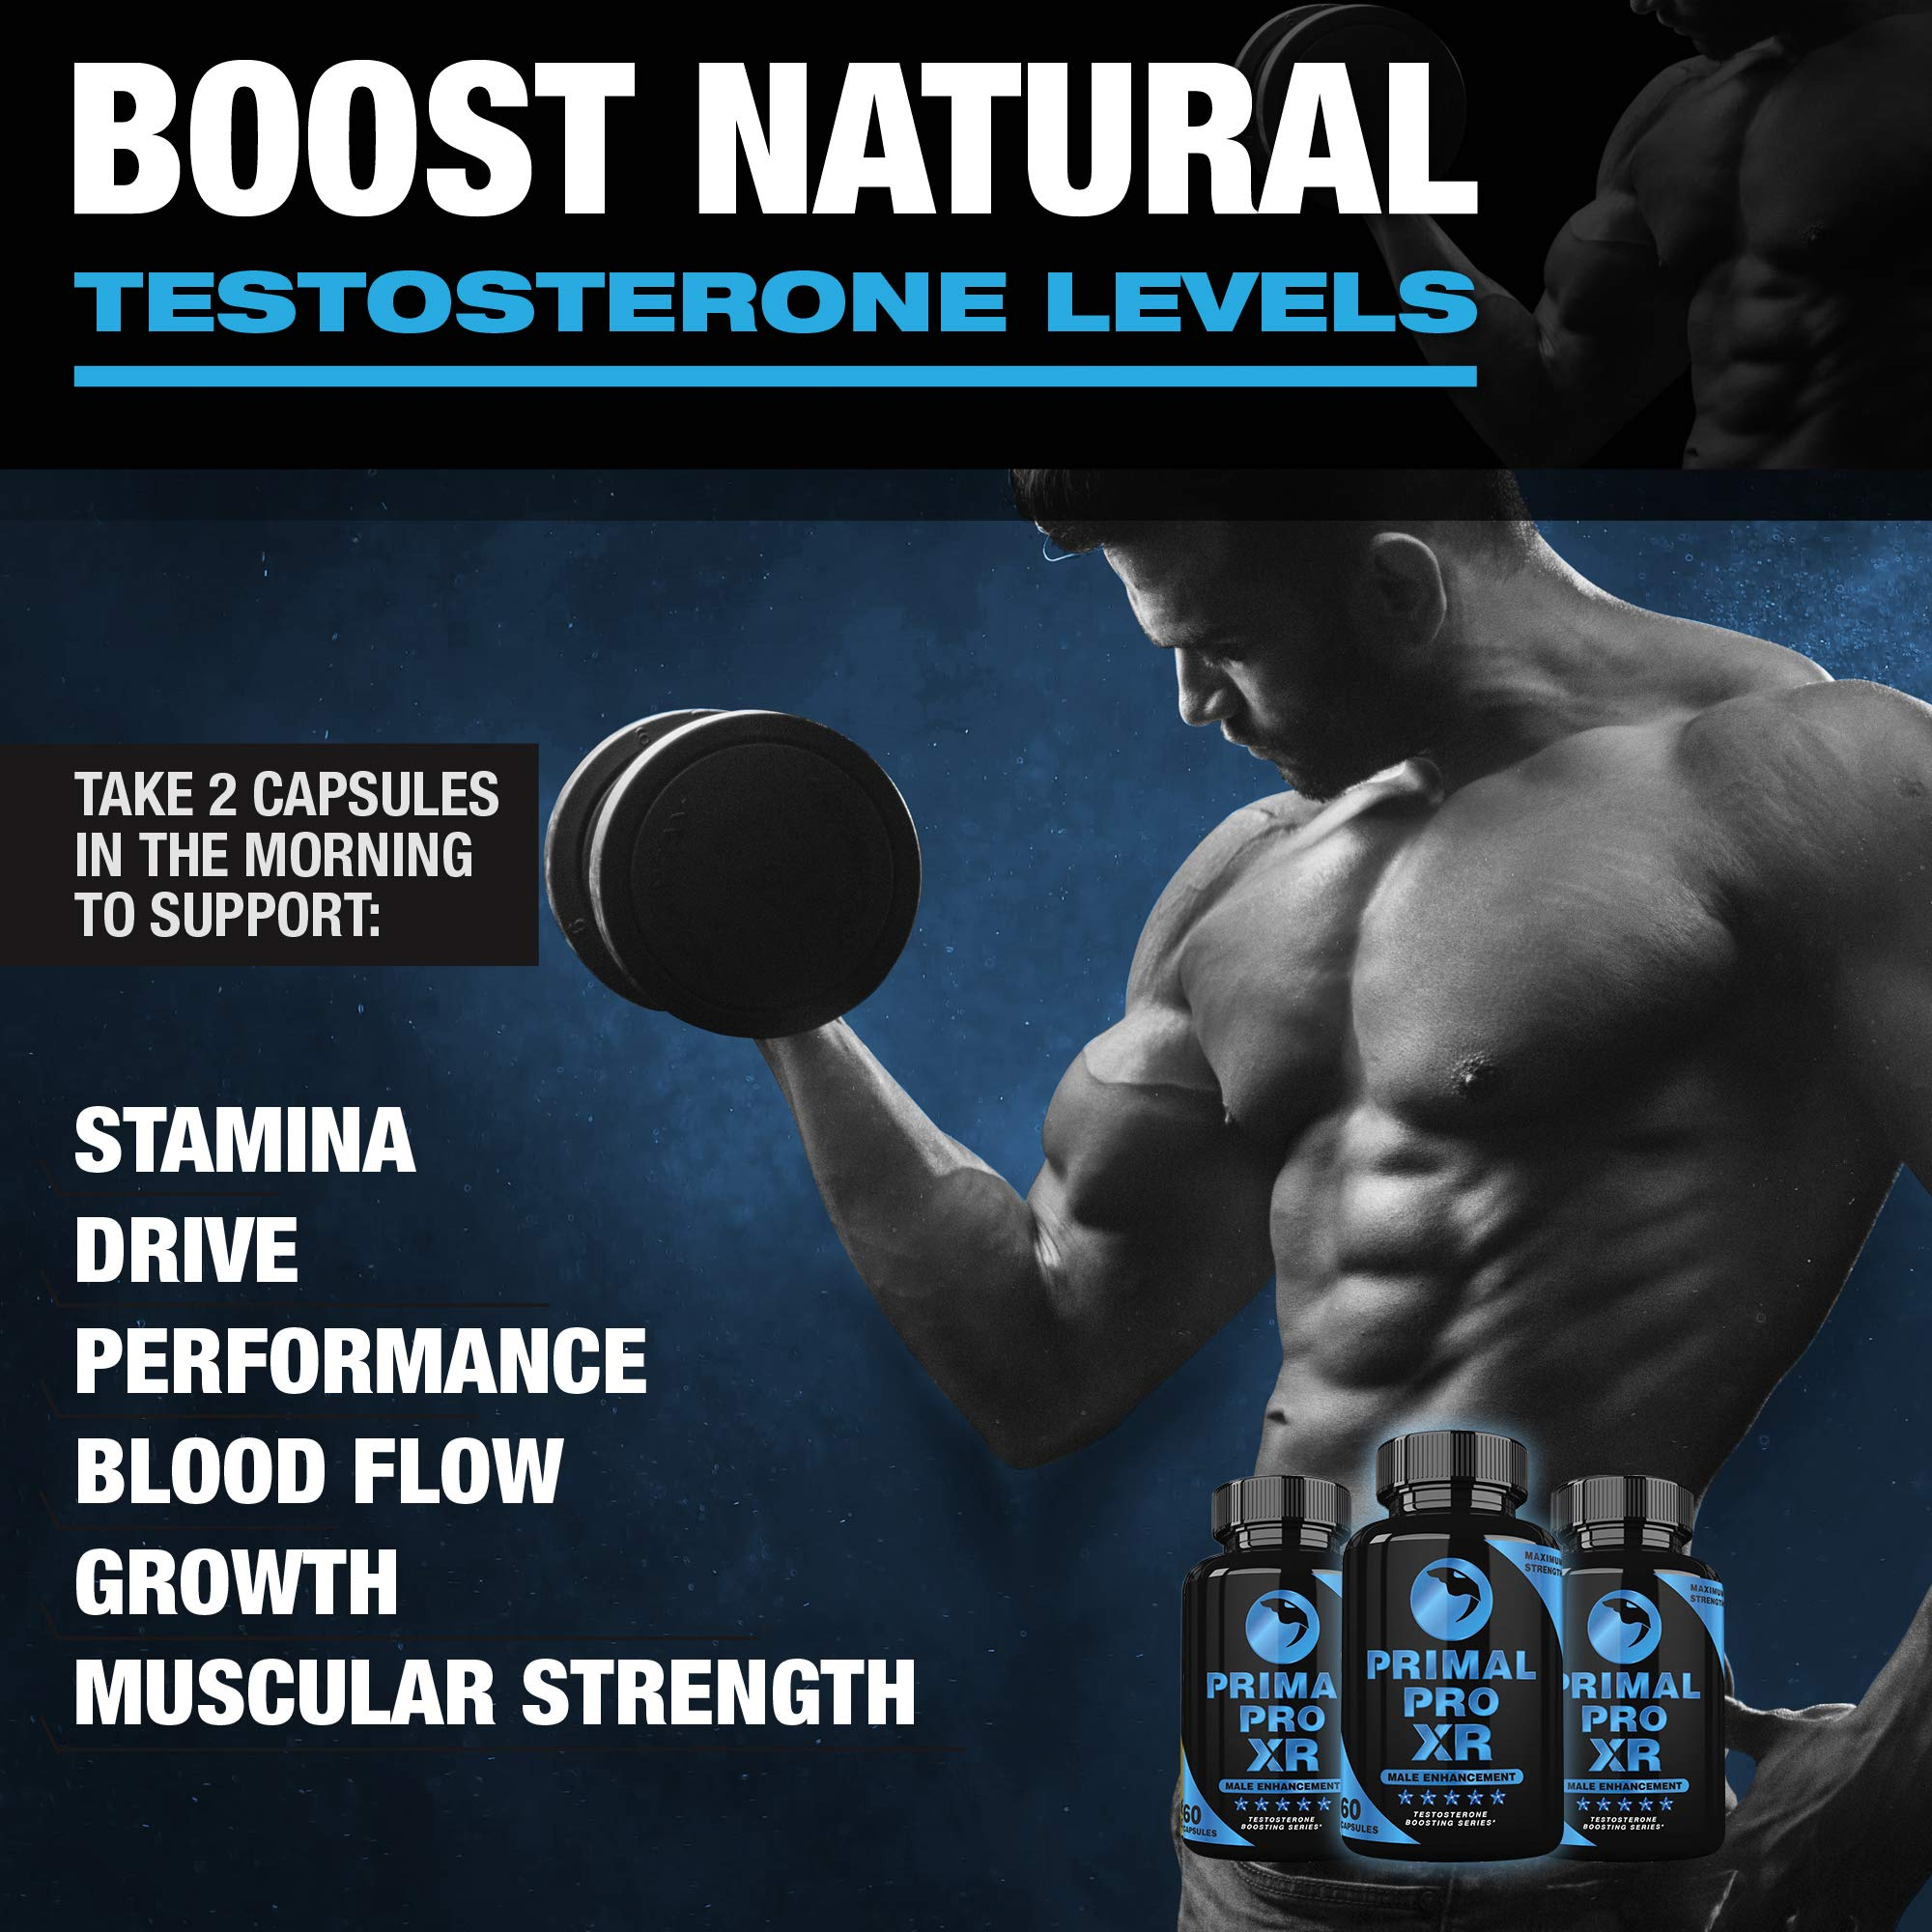 Primal Pro XR - Male Enhancement - Extra Strength Testosterone Booster - Naturally Boost Your Libido, Stamina, Endurance, Strength & Energy for Men & Women - Burn Fat & Build Lean Muscle Mass Today by Primal Pro XR (Image #2)